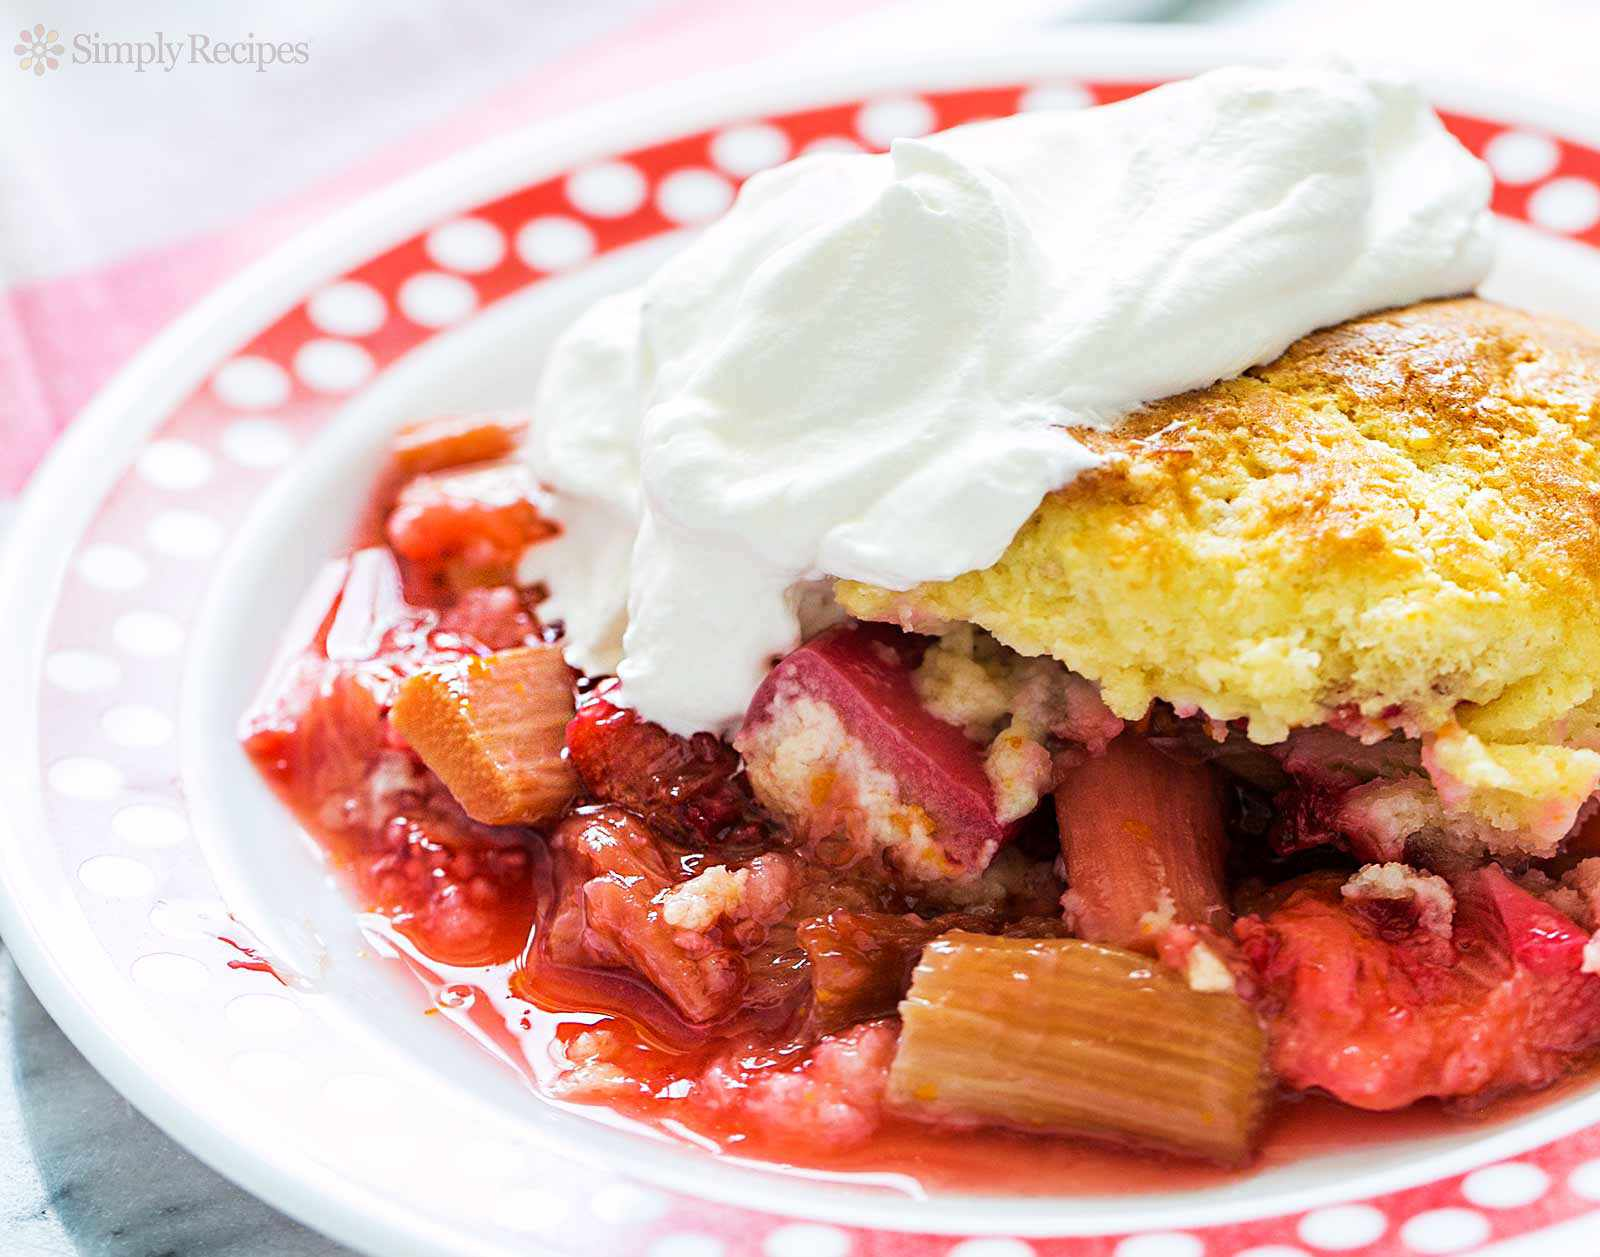 Strawberry Rhubarb Cobbler slice topped with whipped cream